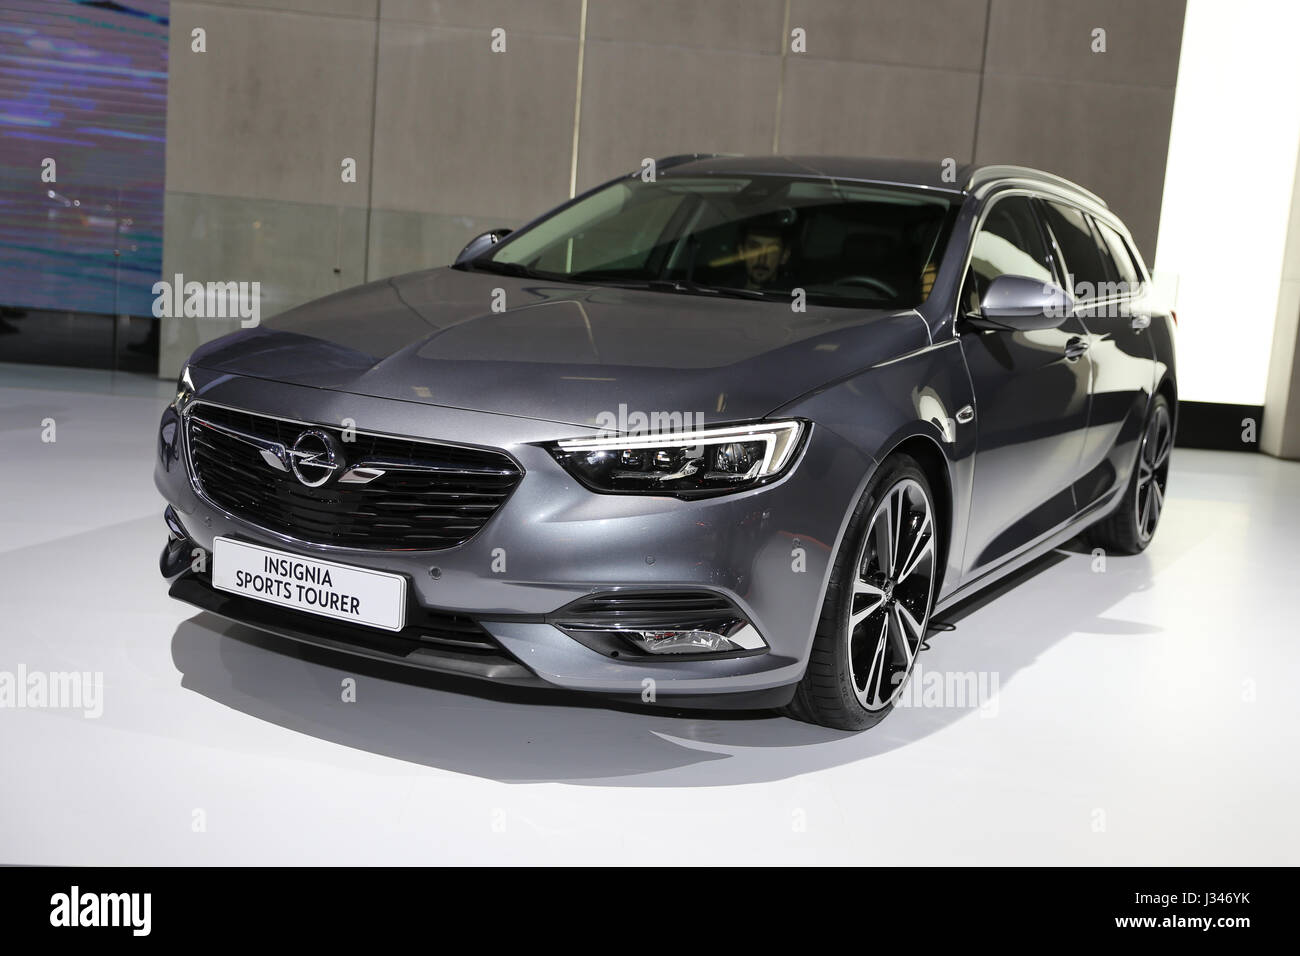 istanbul turkey april 22 2017 opel insignia sports tourer on stock photo royalty free. Black Bedroom Furniture Sets. Home Design Ideas